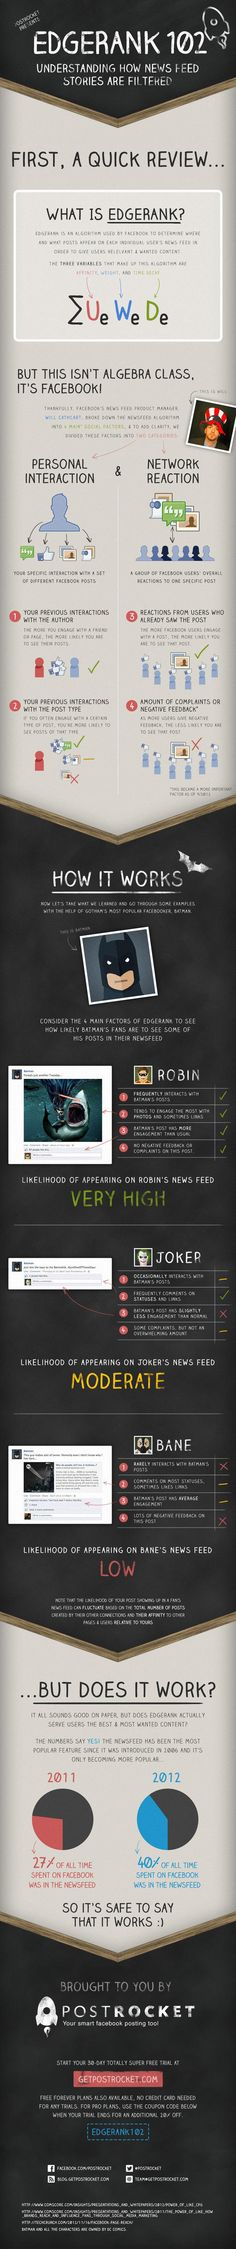 Edgerank 102: understanding how news feed stories are filtered #infographic